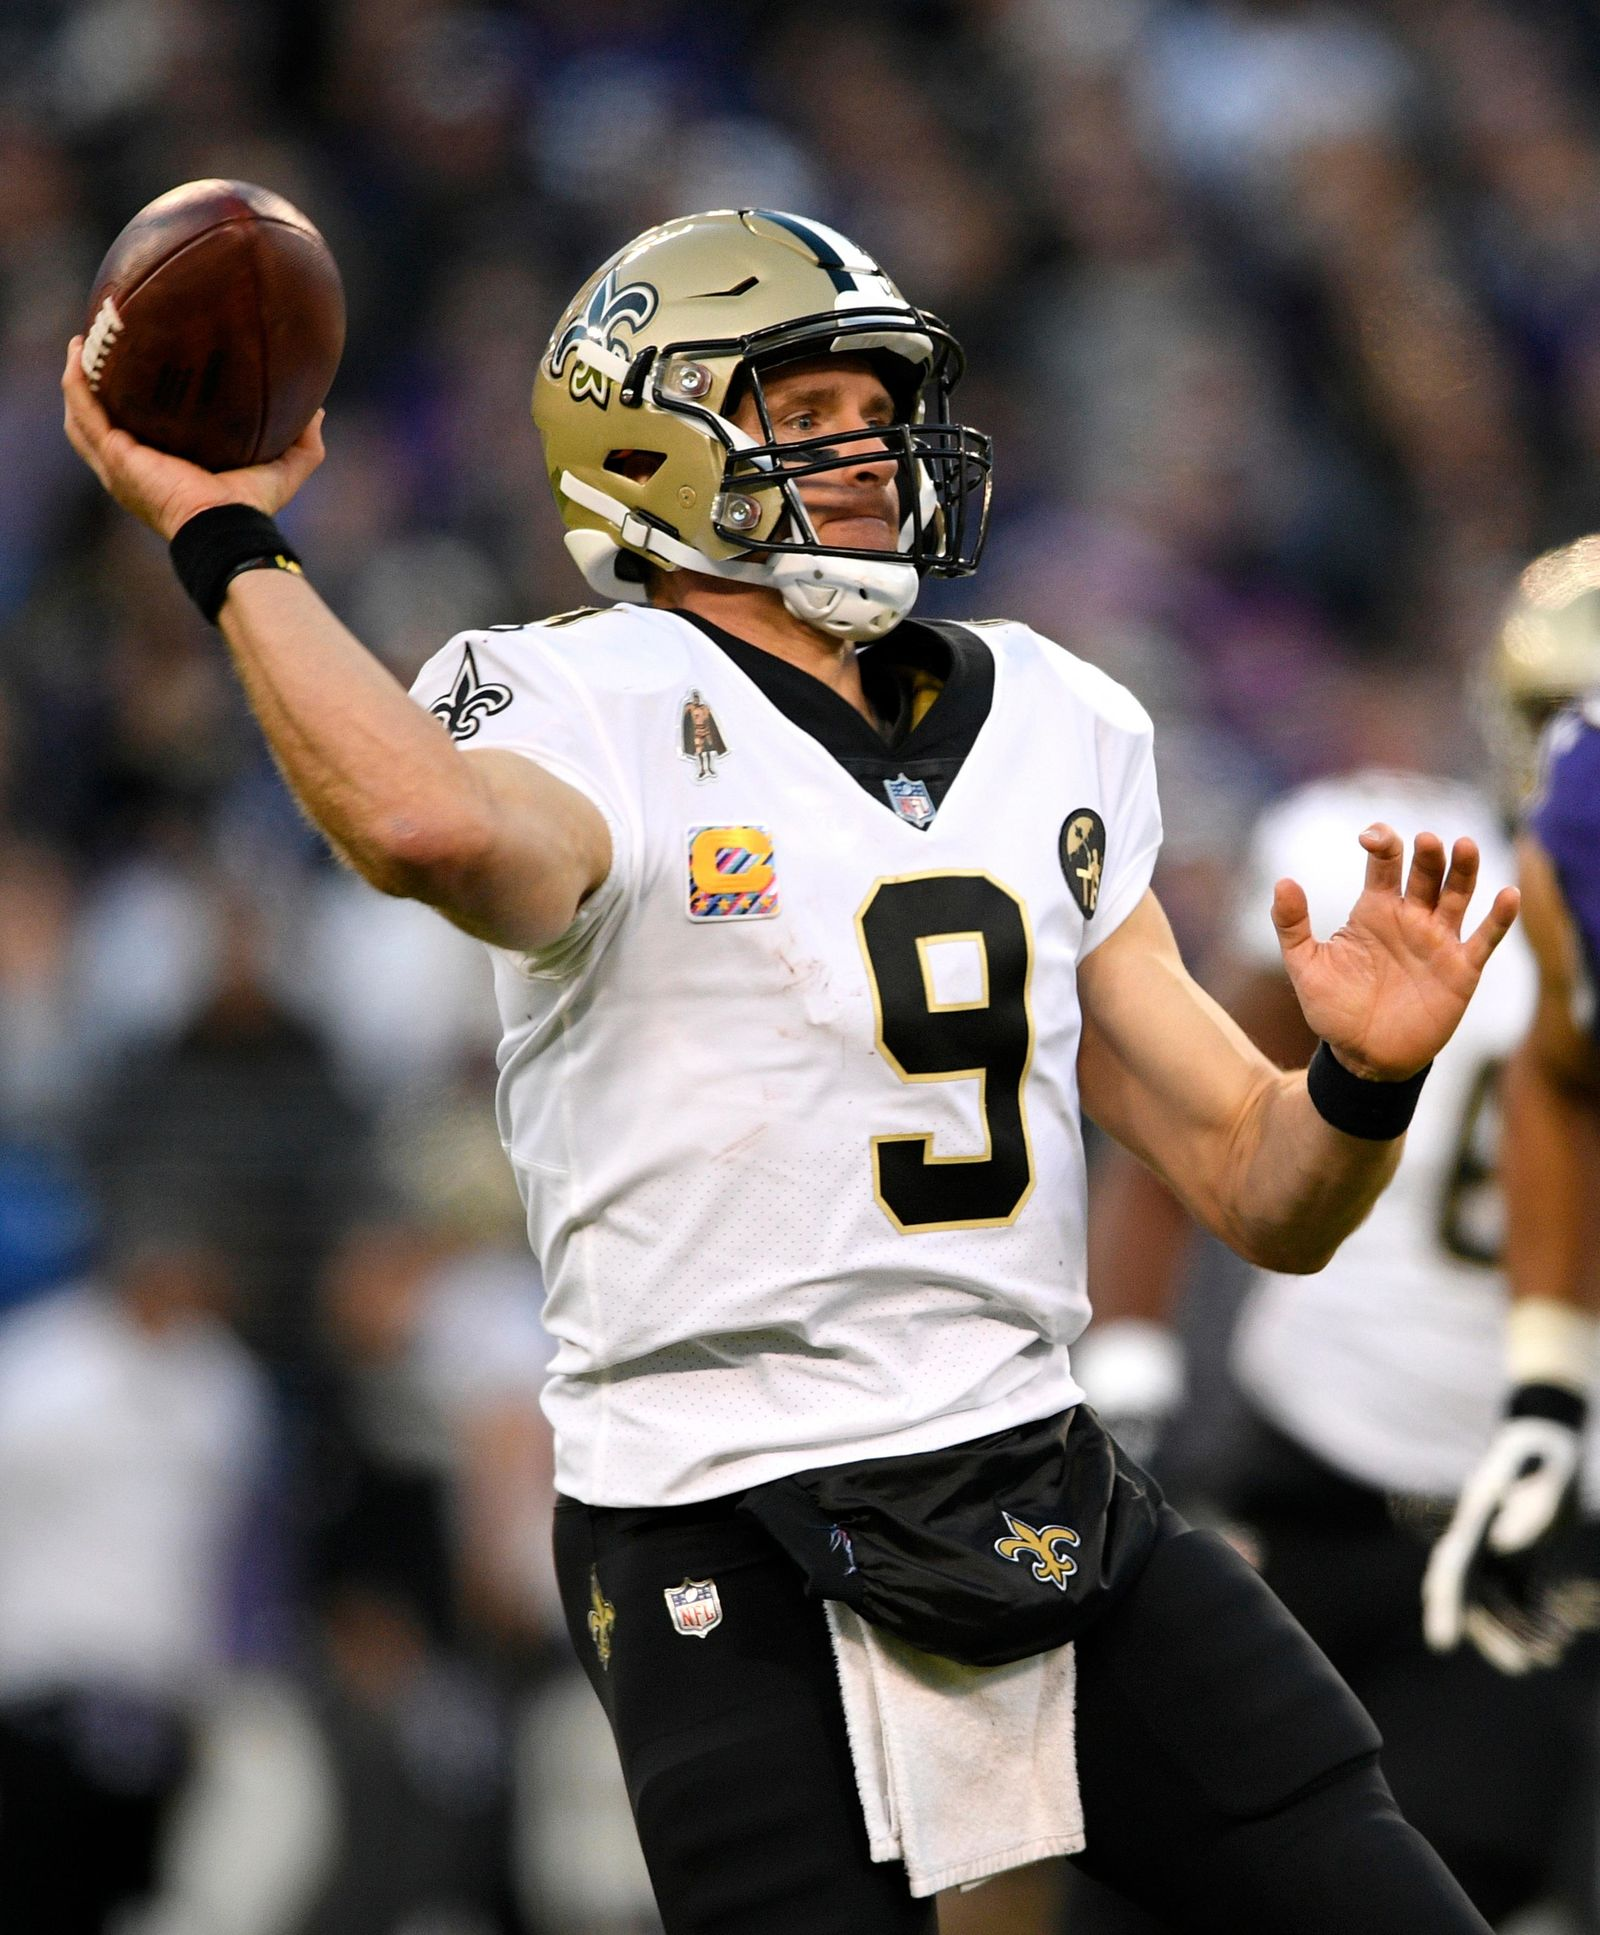 FILE - In this Oct. 21, 2018, file photo, New Orleans Saints quarterback Drew Brees (9) prepares to throw to a receiver in the second half of an NFL football game against the Baltimore Ravens, in Baltimore. The Saints and the Philadelphia Eagles play in a divisional playoff game on Sunday, Jan. 12, 2019. (AP Photo/Nick Wass, File)